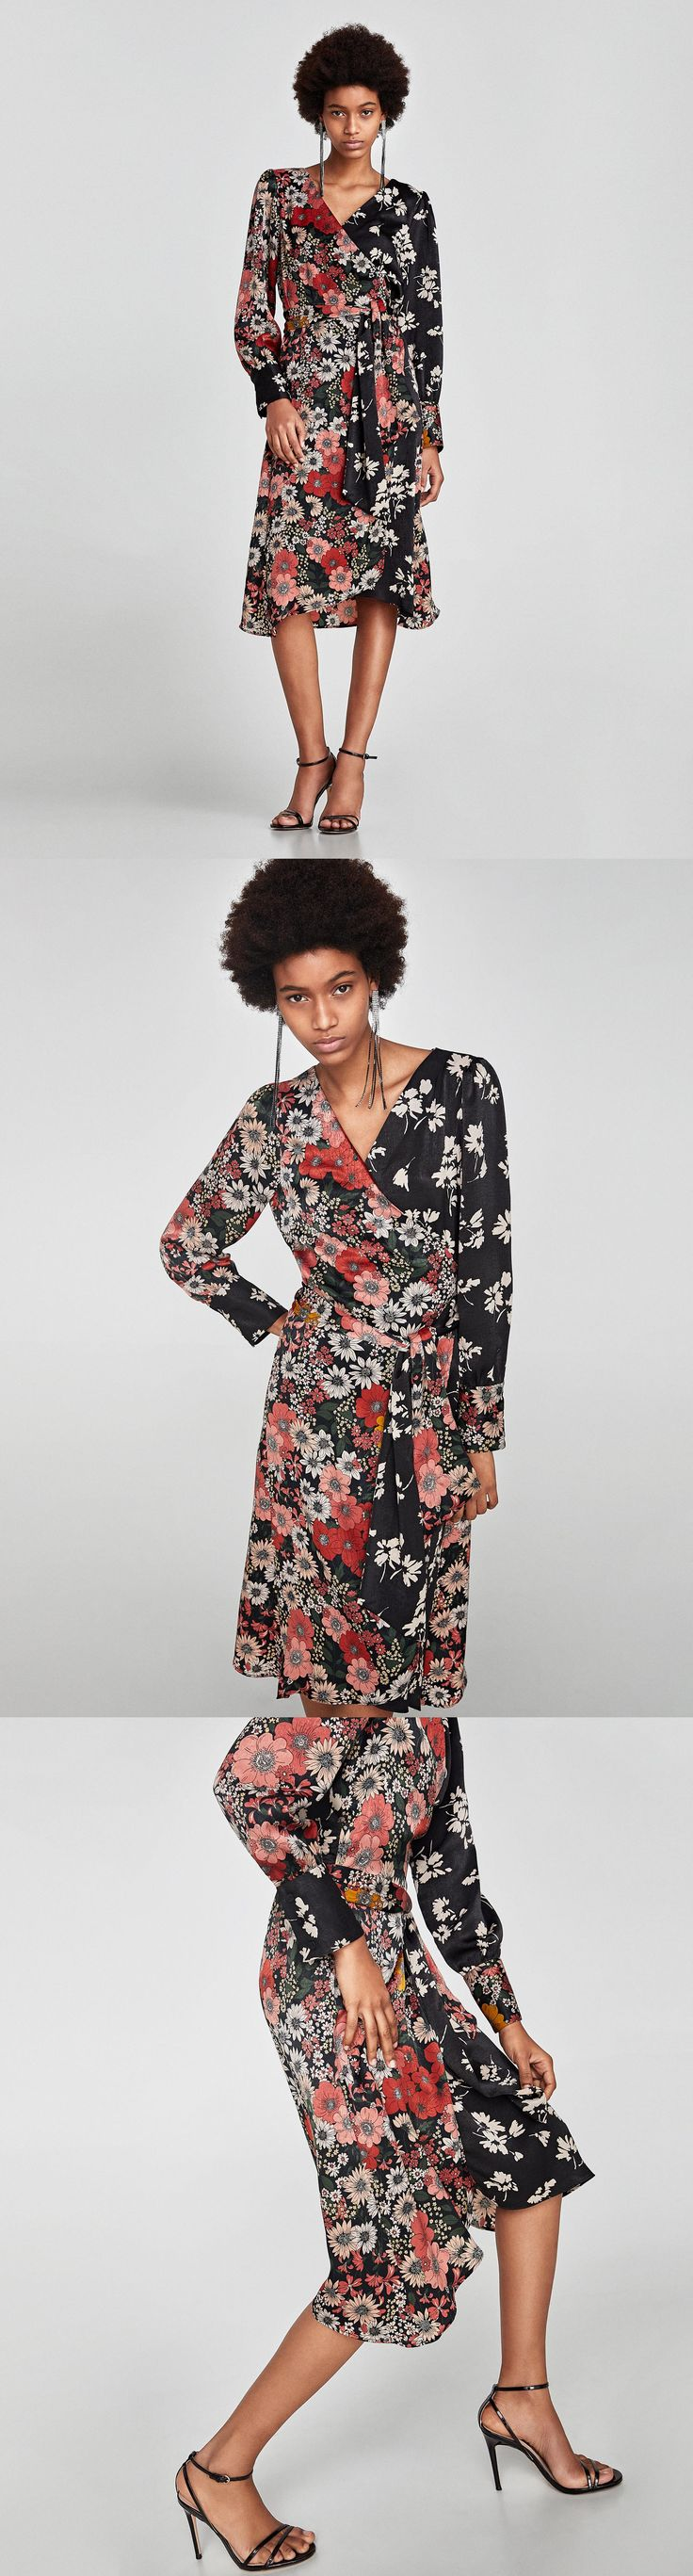 Crossed Midi Dress // 69.90 USD // Zara // Floral print midi dress with long sleeves, a fabric belt and a crossover V-neckline. HEIGHT OF MODEL: 178 cm. / 5′ 10″